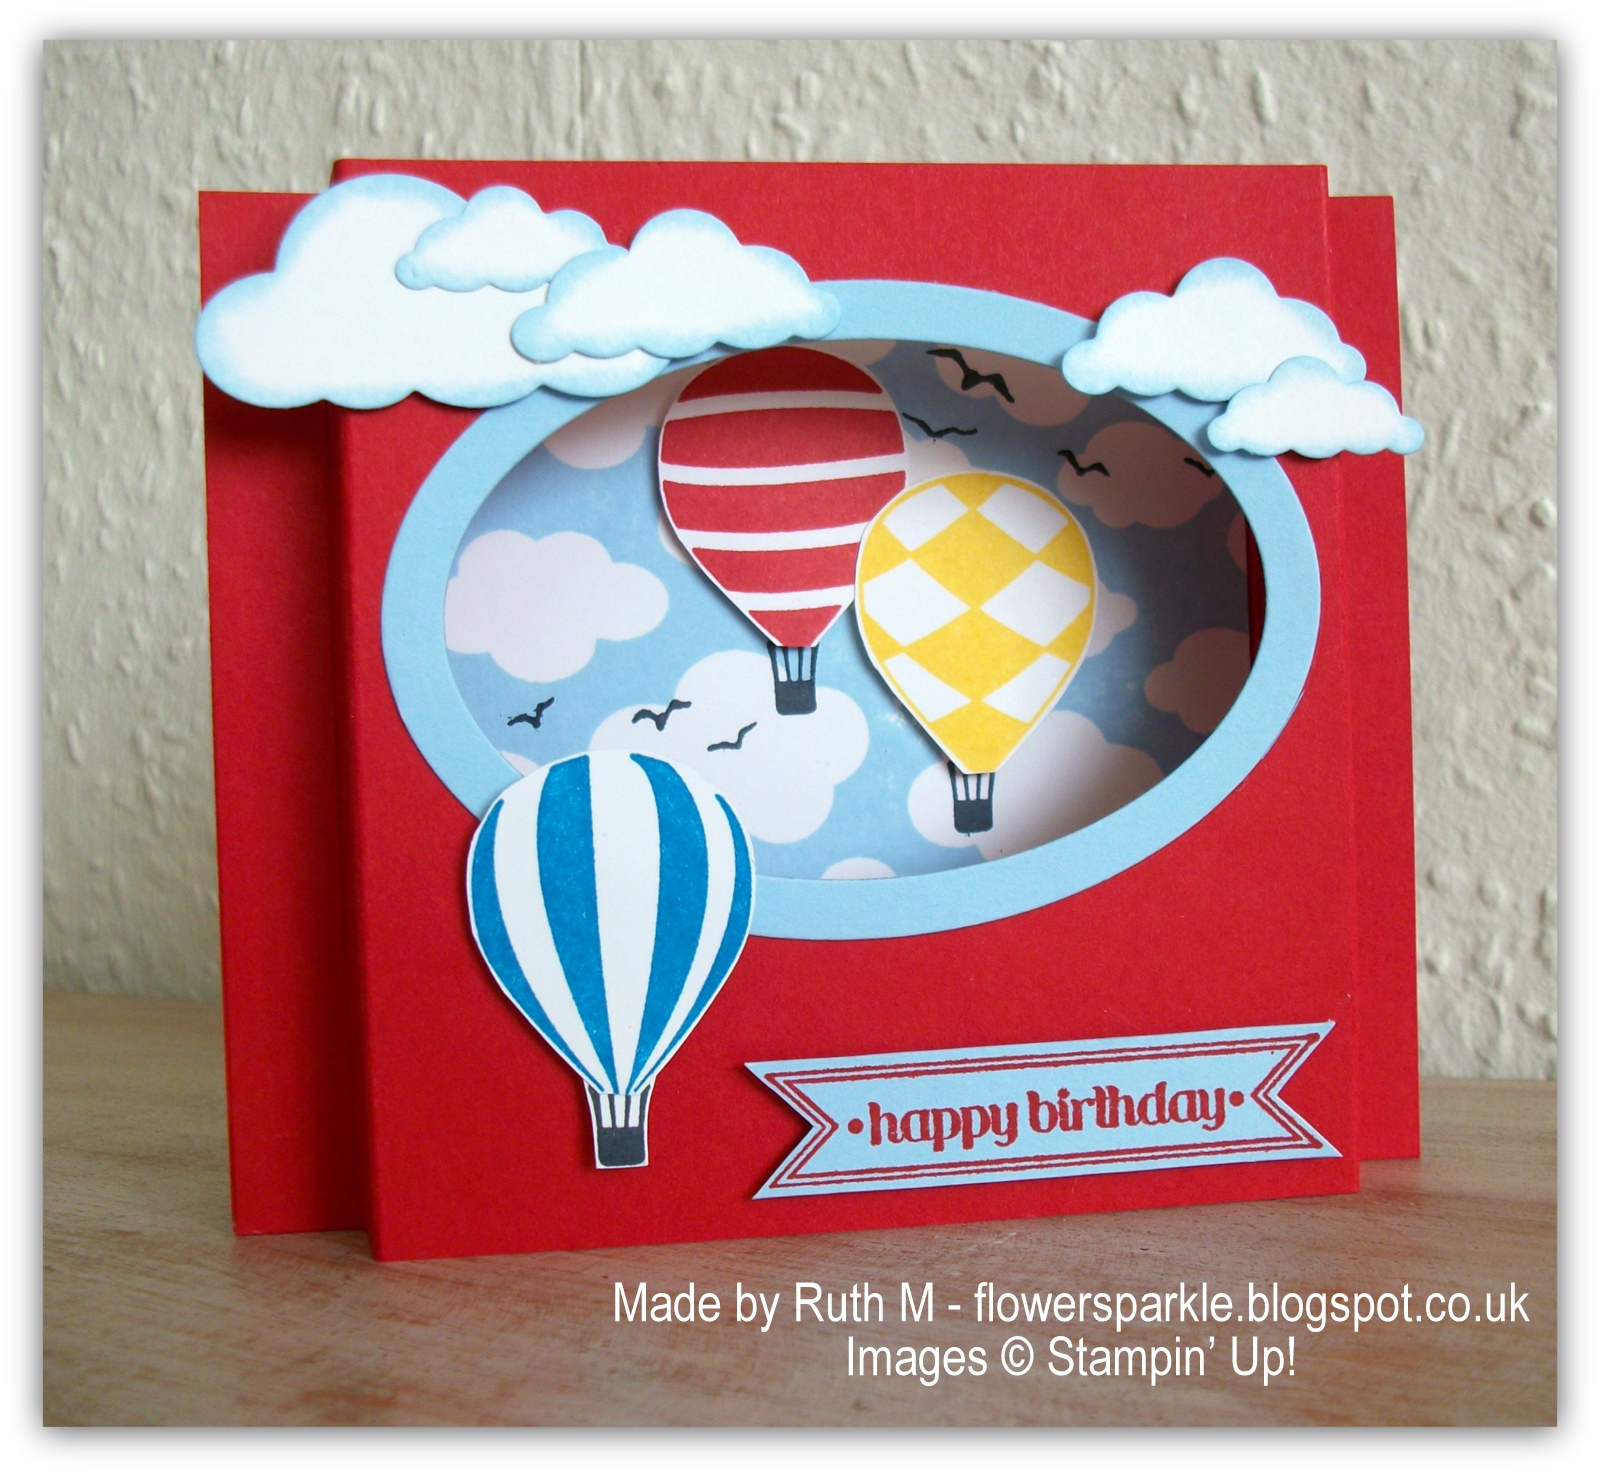 Flower sparkle hot air balloons birthday shadow box card choc chip hot air balloons birthday shadow box card choc chip ginger nuts a cake bookmarktalkfo Image collections